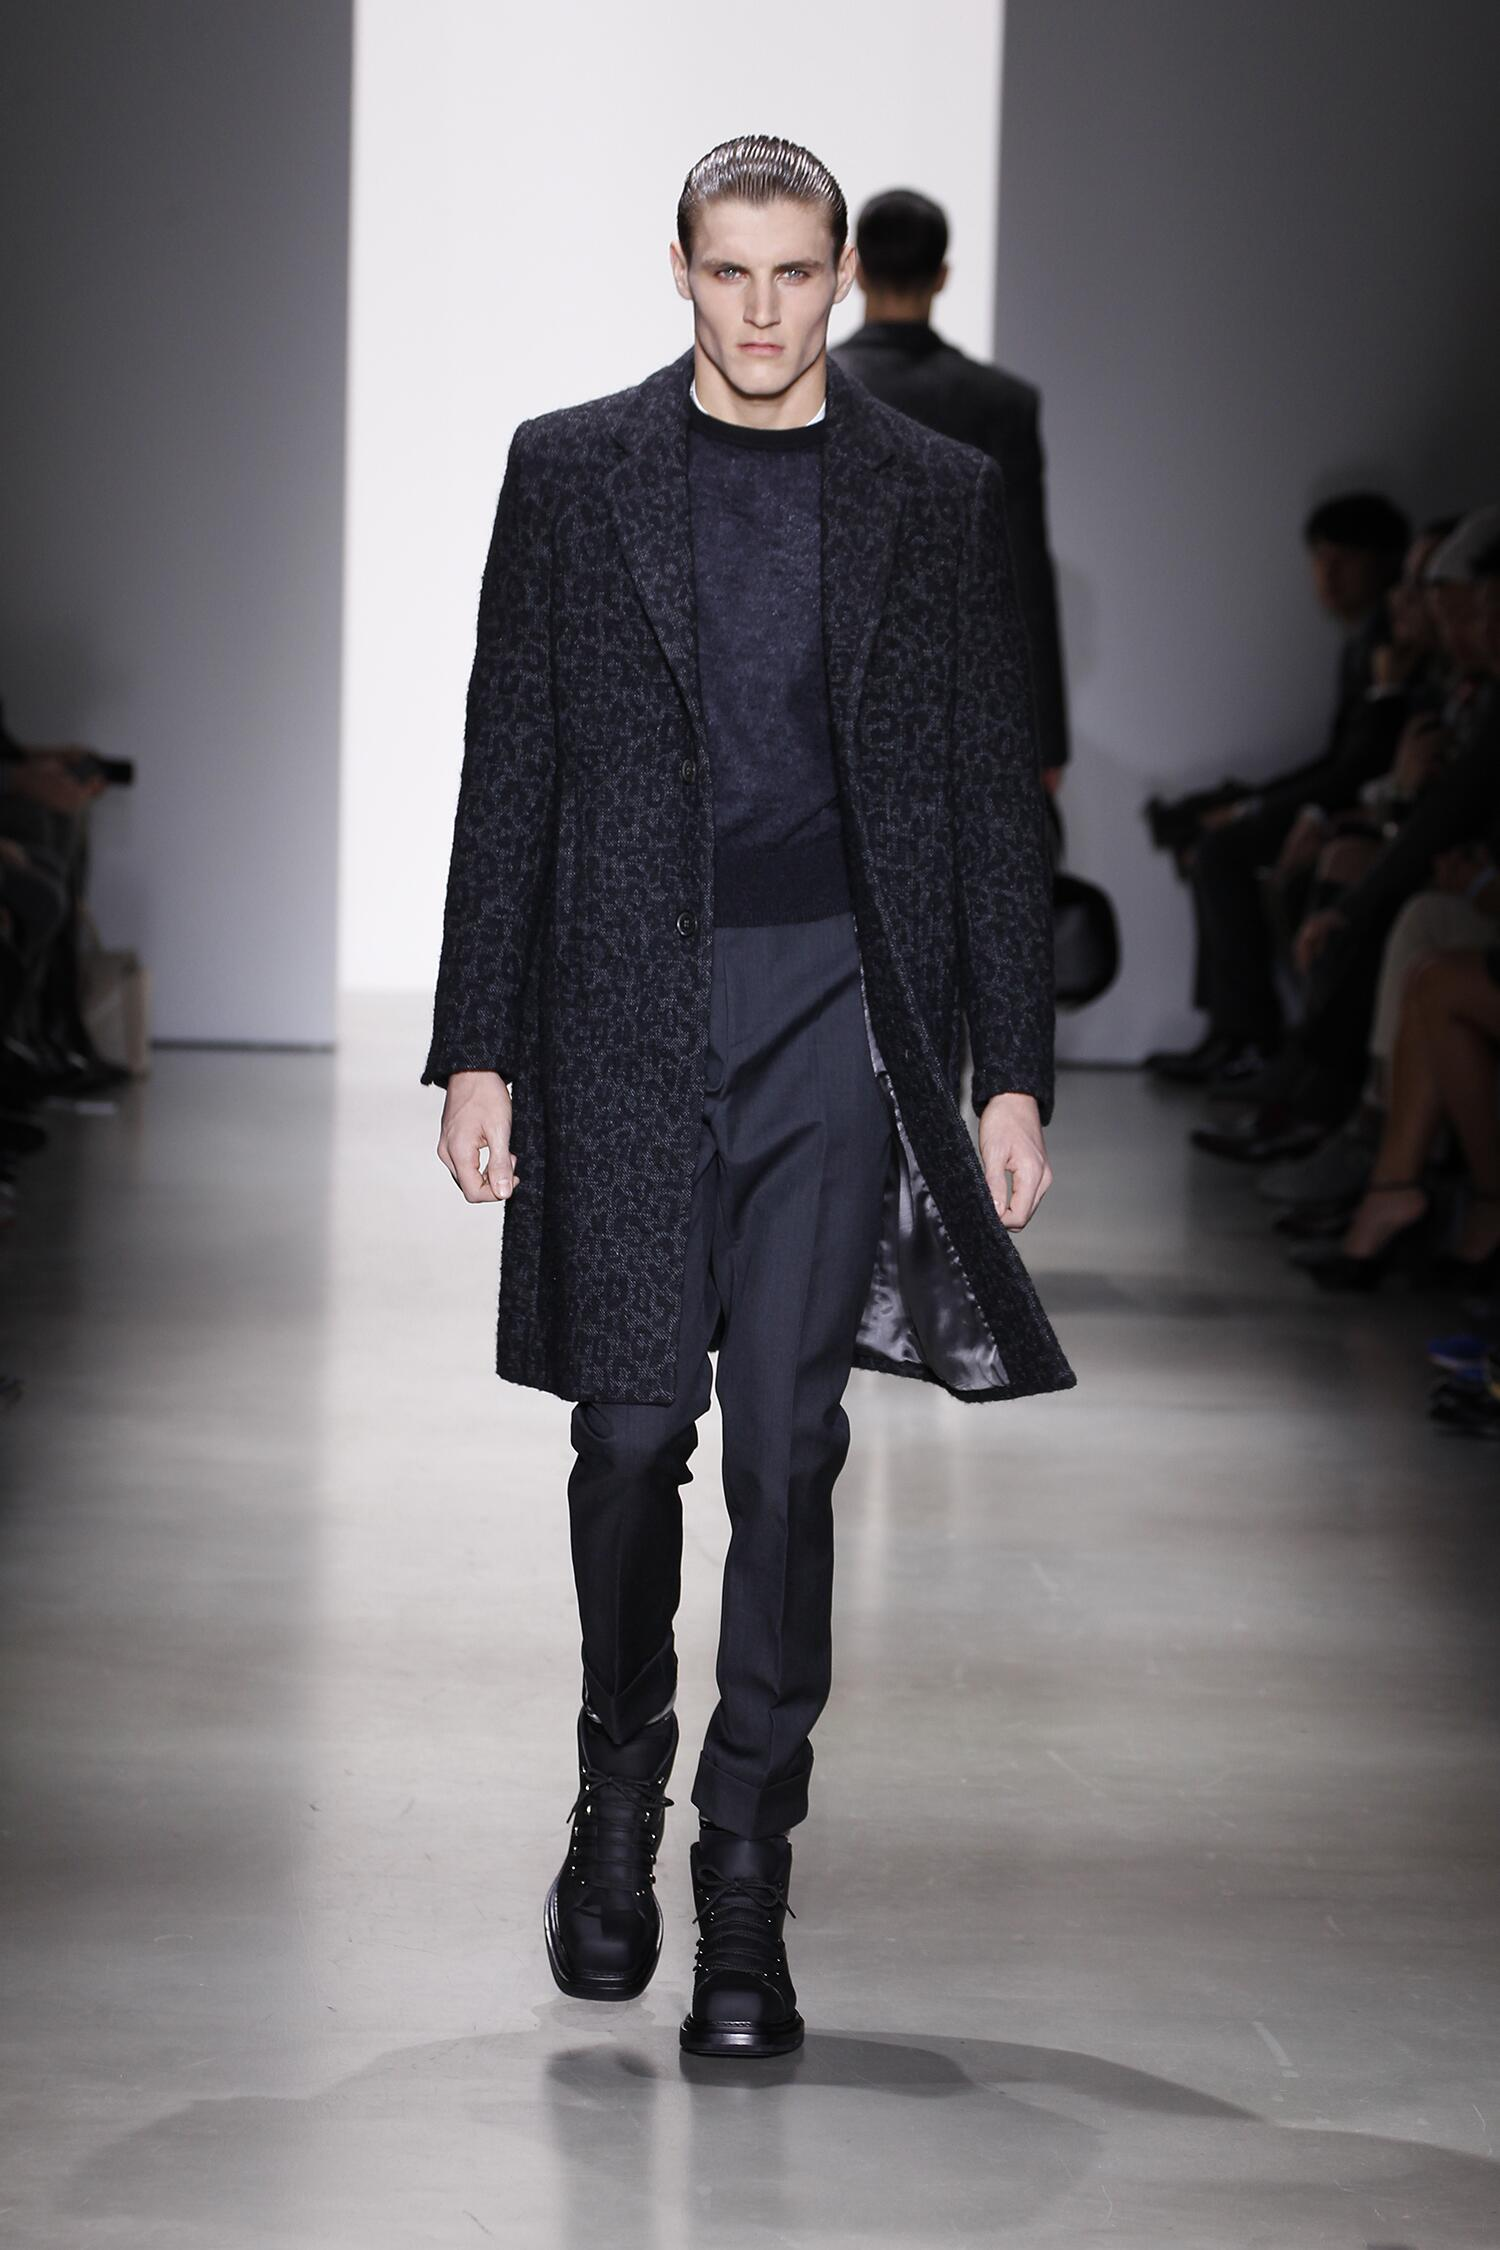 CALVIN KLEIN COLLECTION MEN'S FALL 2015 | The Skinny Beep